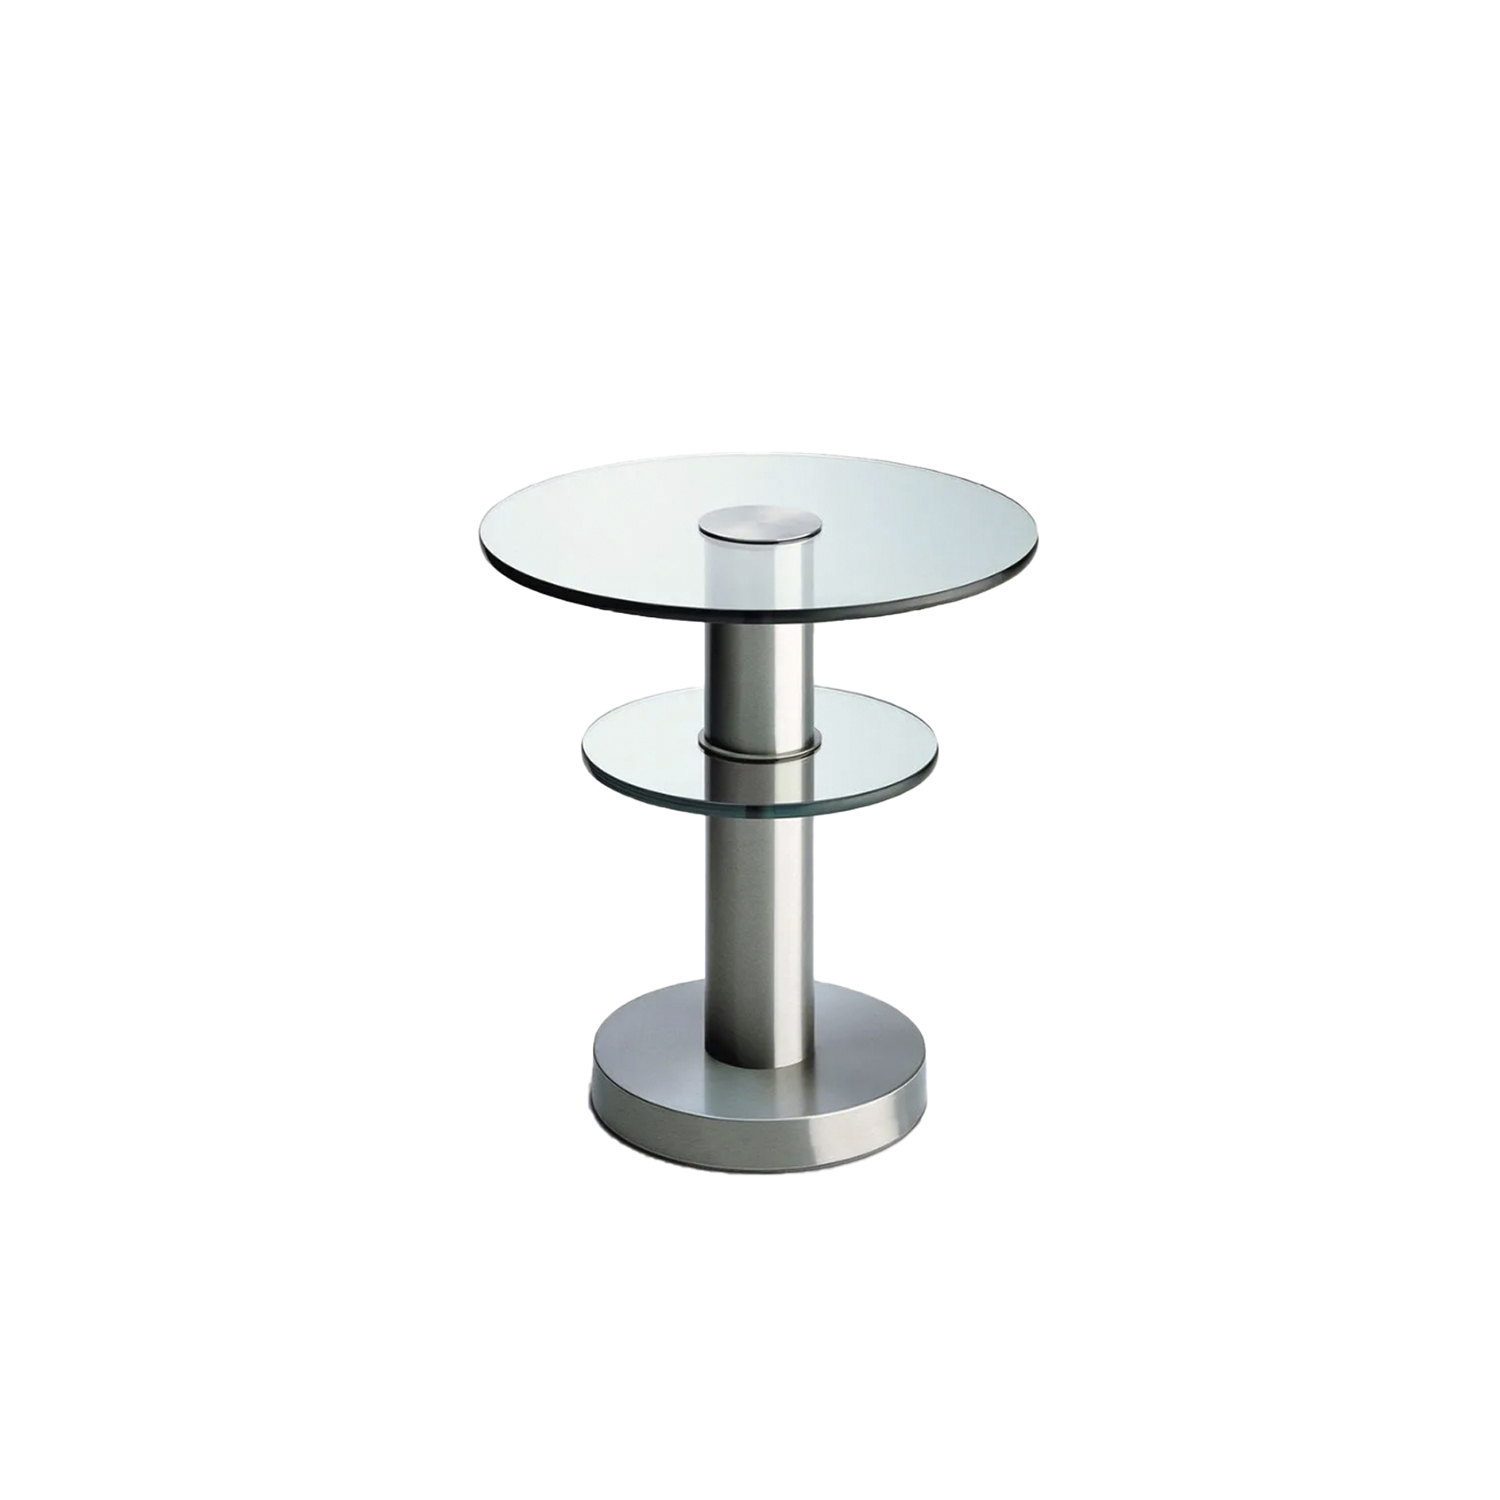 Tavolino Coffee Table - This coffee table was designed by Gio Ponti and is made from two discs in float glass, 15 mm thick. The structure is in brushed nickel-plated brass.  Coffee table with two disc made of float-glass. Frame made of brushed nickel-plated metal. | Matter of Stuff